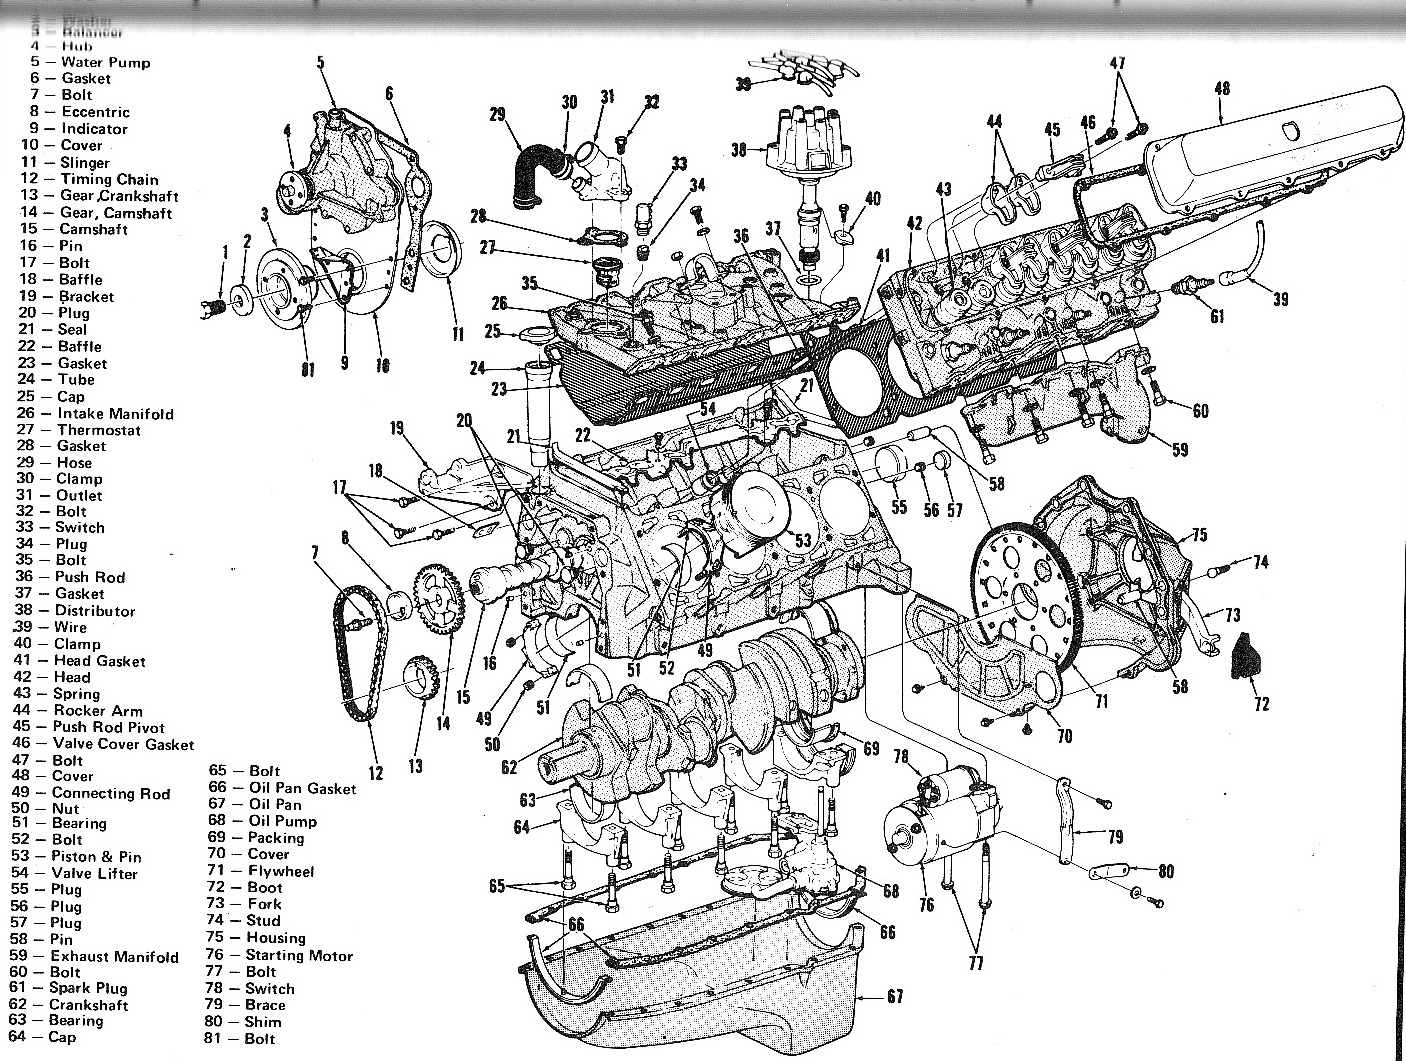 hight resolution of 2000 oldsmobile engine diagram electrical wiring diagram 2000 oldsmobile engine diagram